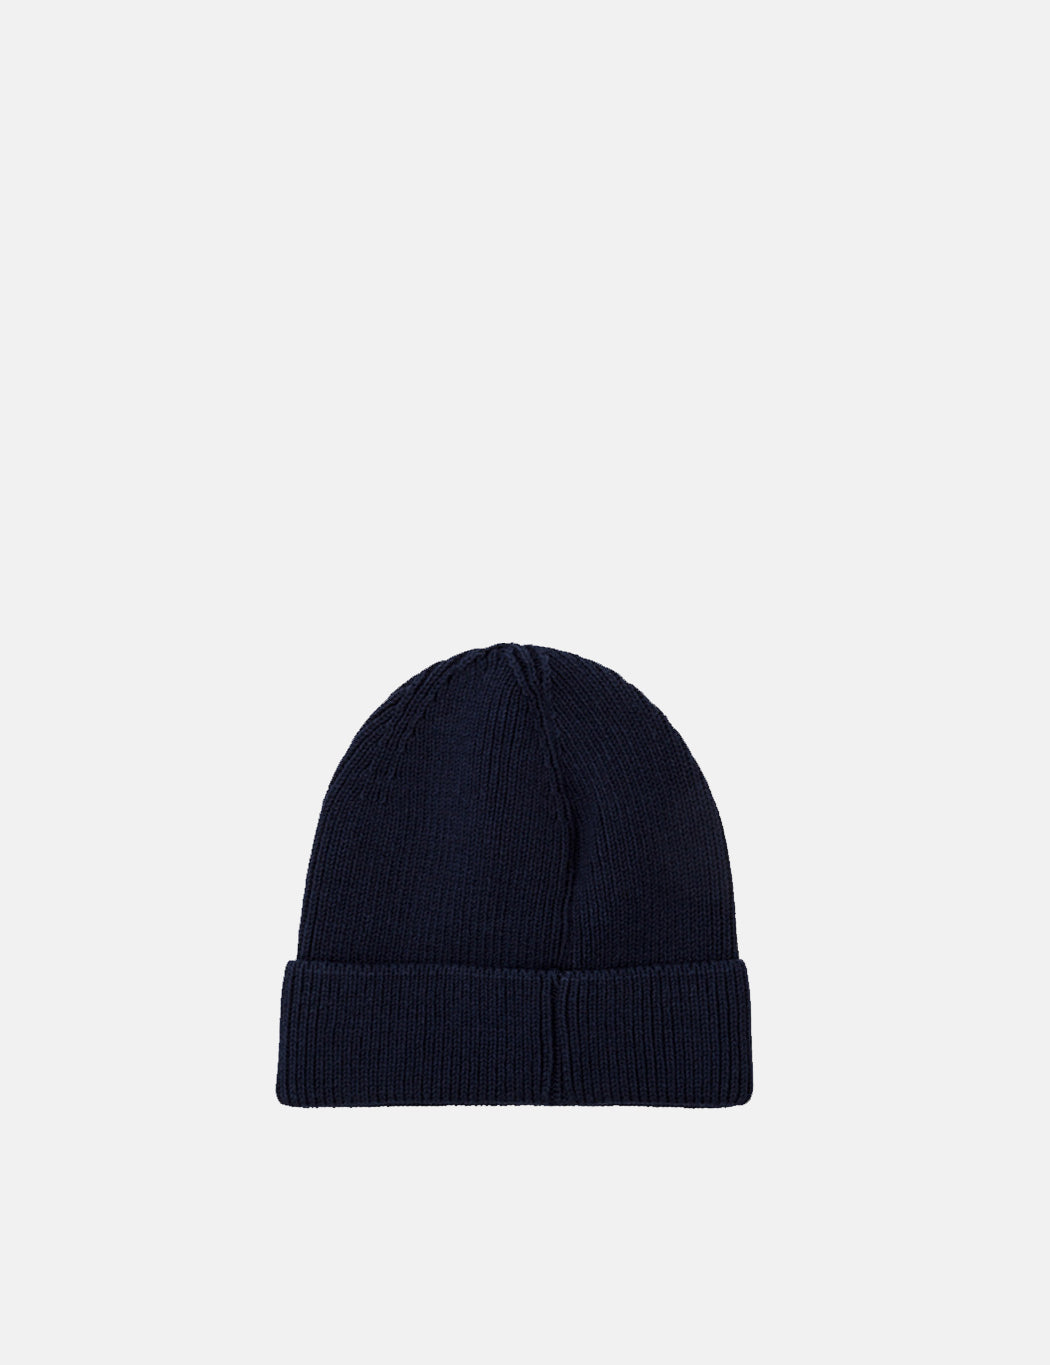 Norse Projects Cotton Watch Beanie Hat - Navy  cd08a899fa4